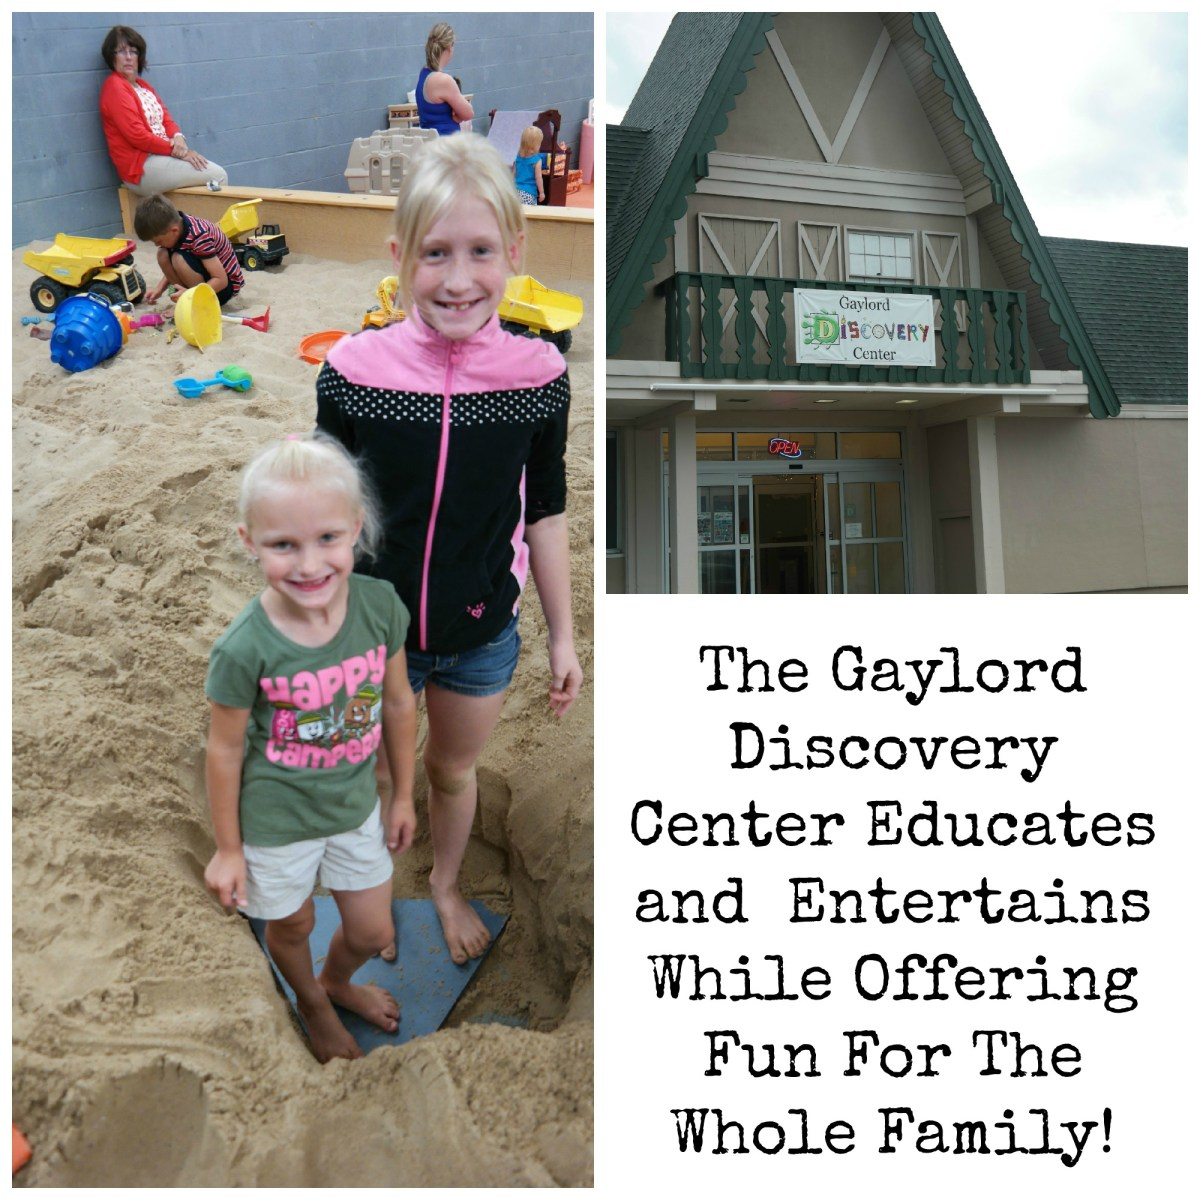 The Gaylord Discovery Center Educates and Entertains! #Dadchat